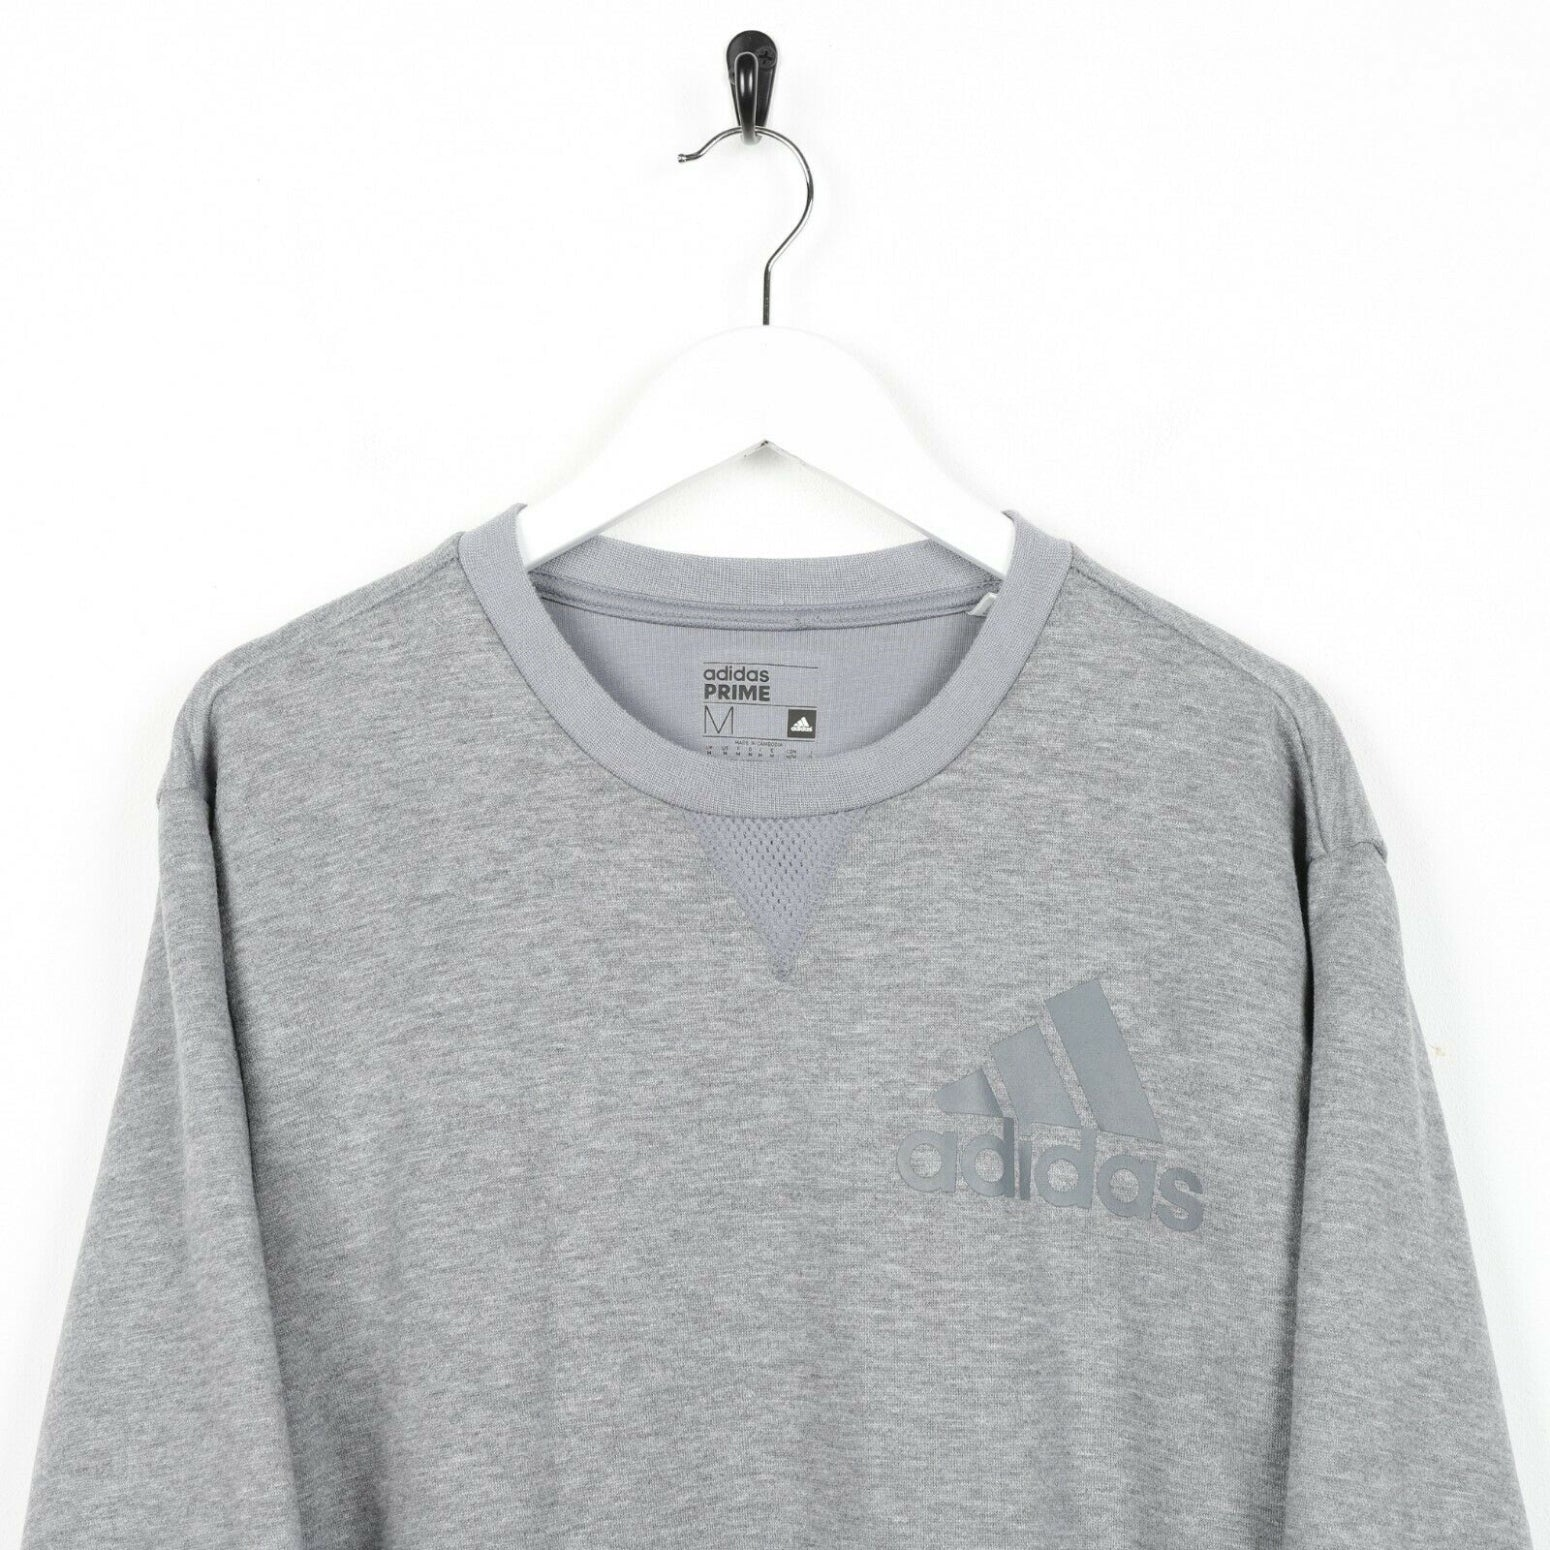 Vintage ADIDAS Small Logo Sweatshirt Jumper Grey | Medium M